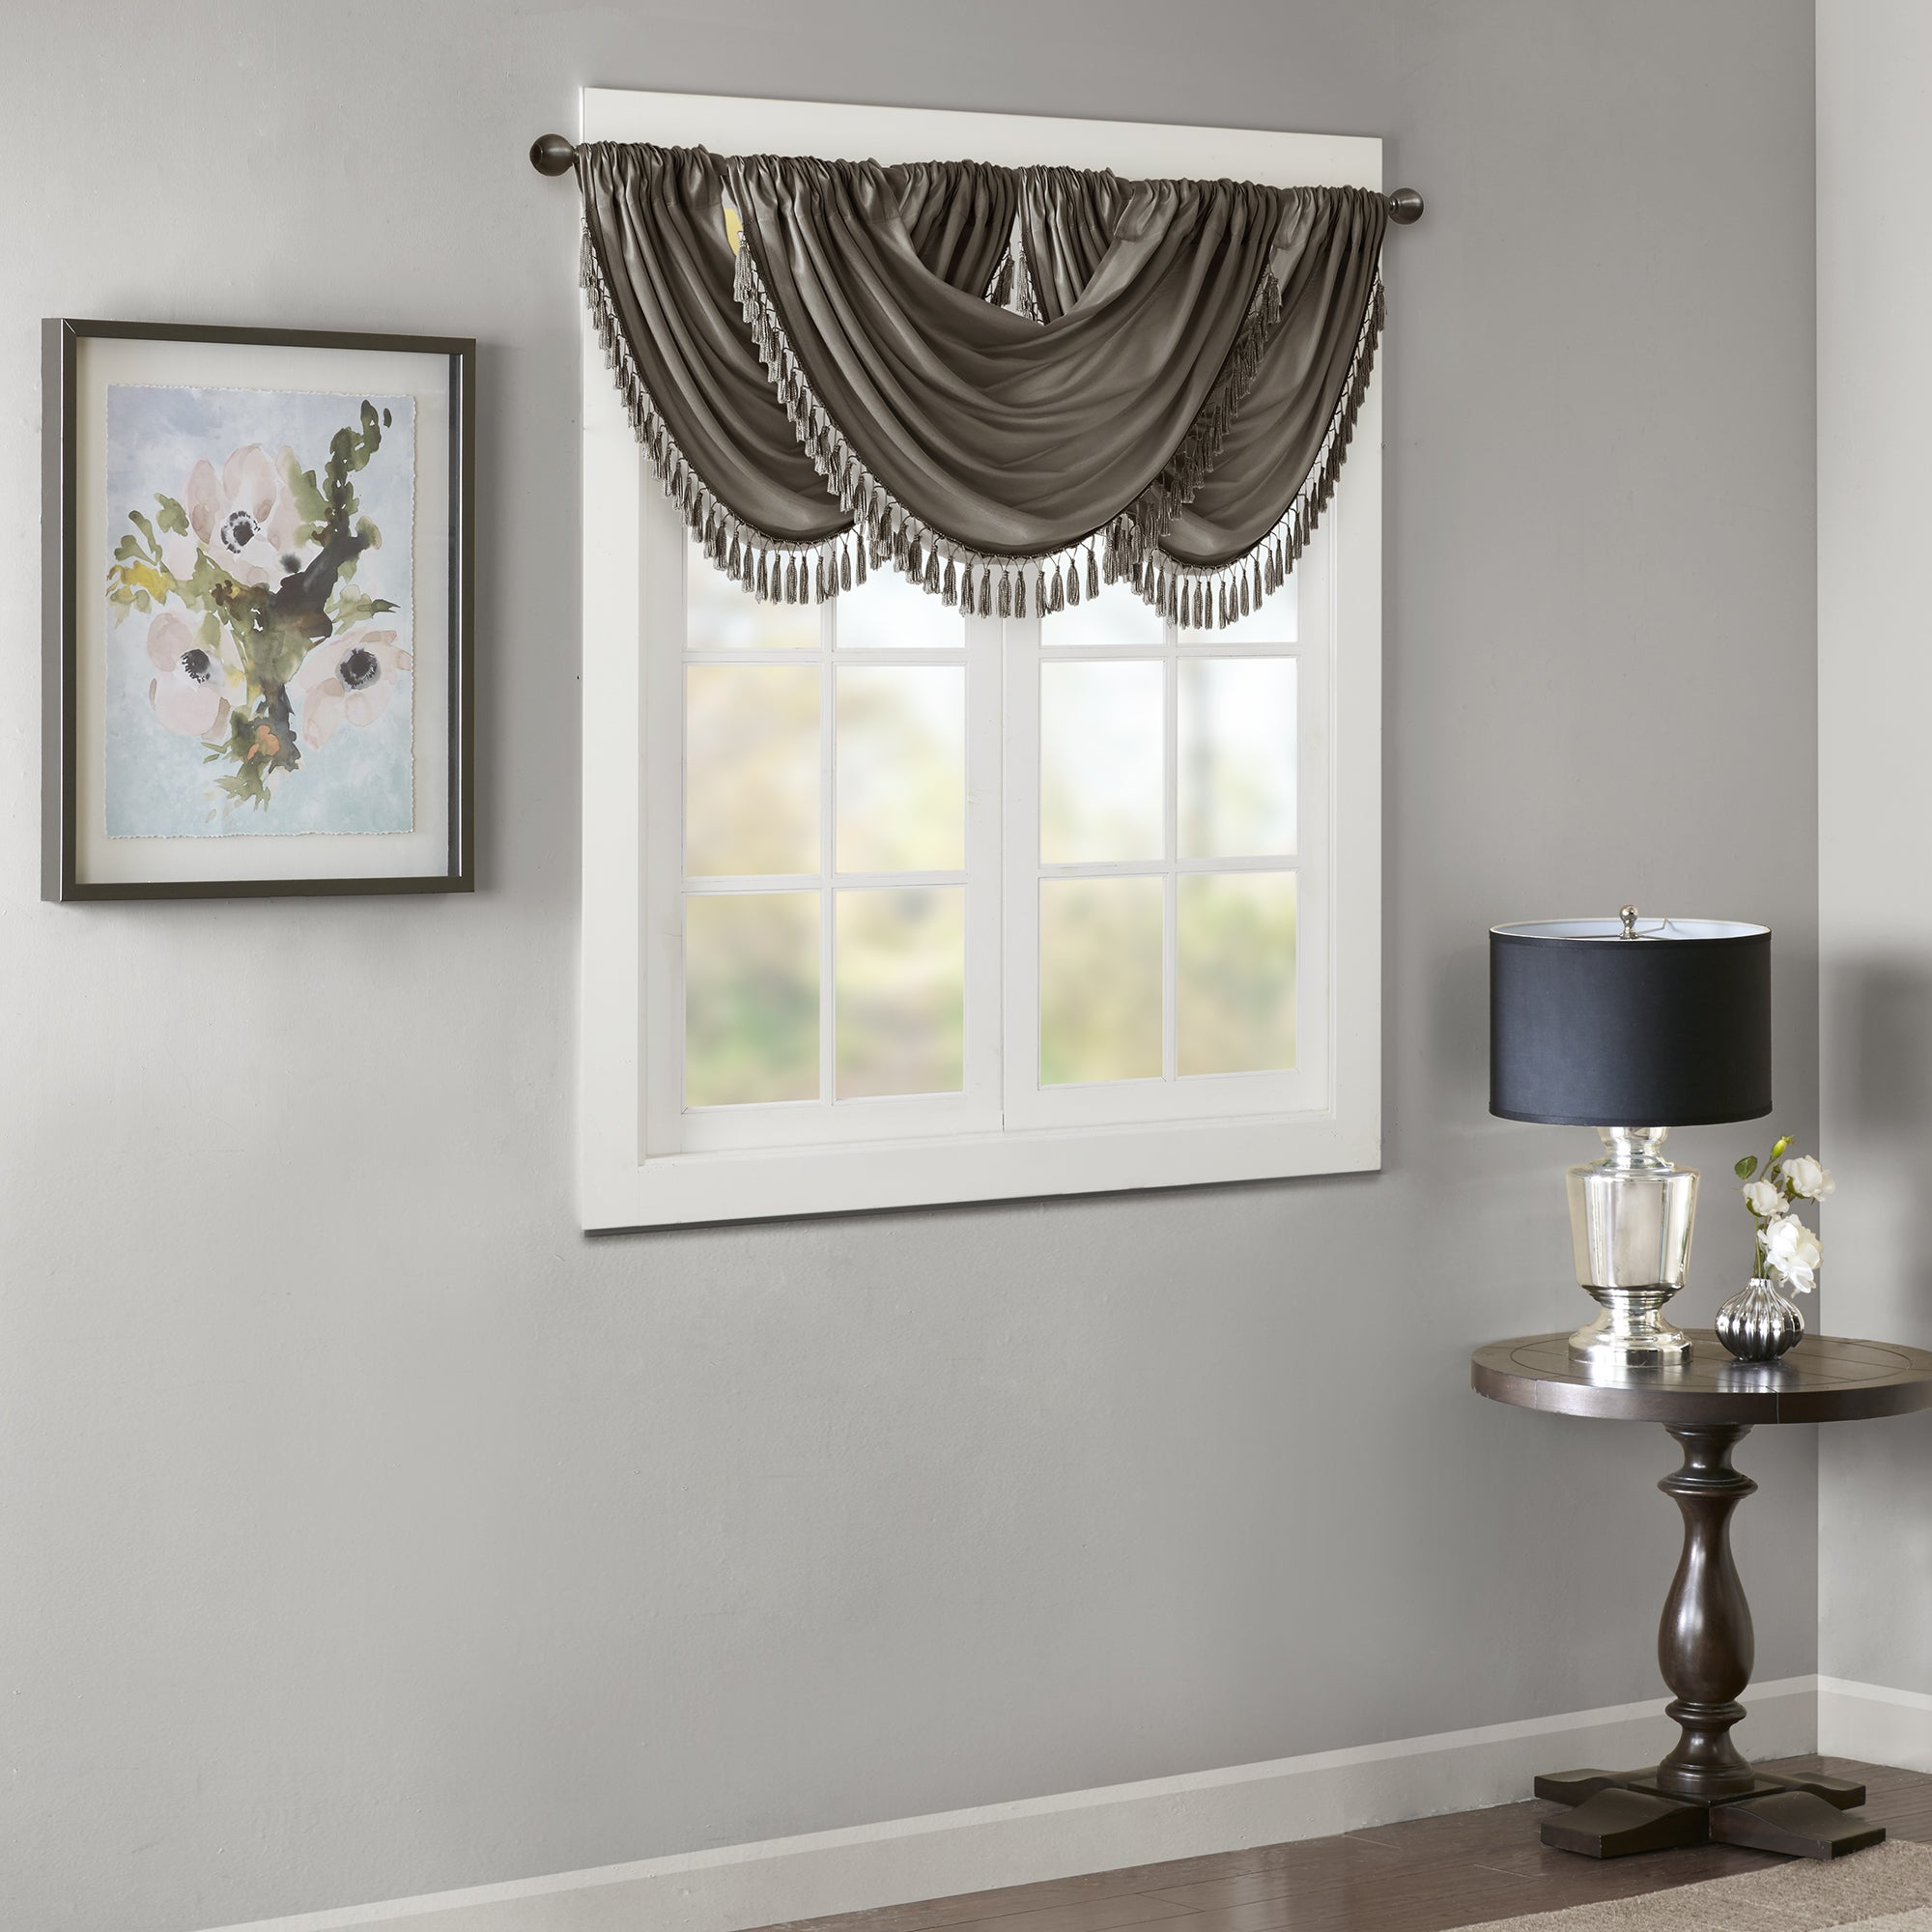 treatment us x classique semisheer valance damask pearl design window ombre valances waterfall